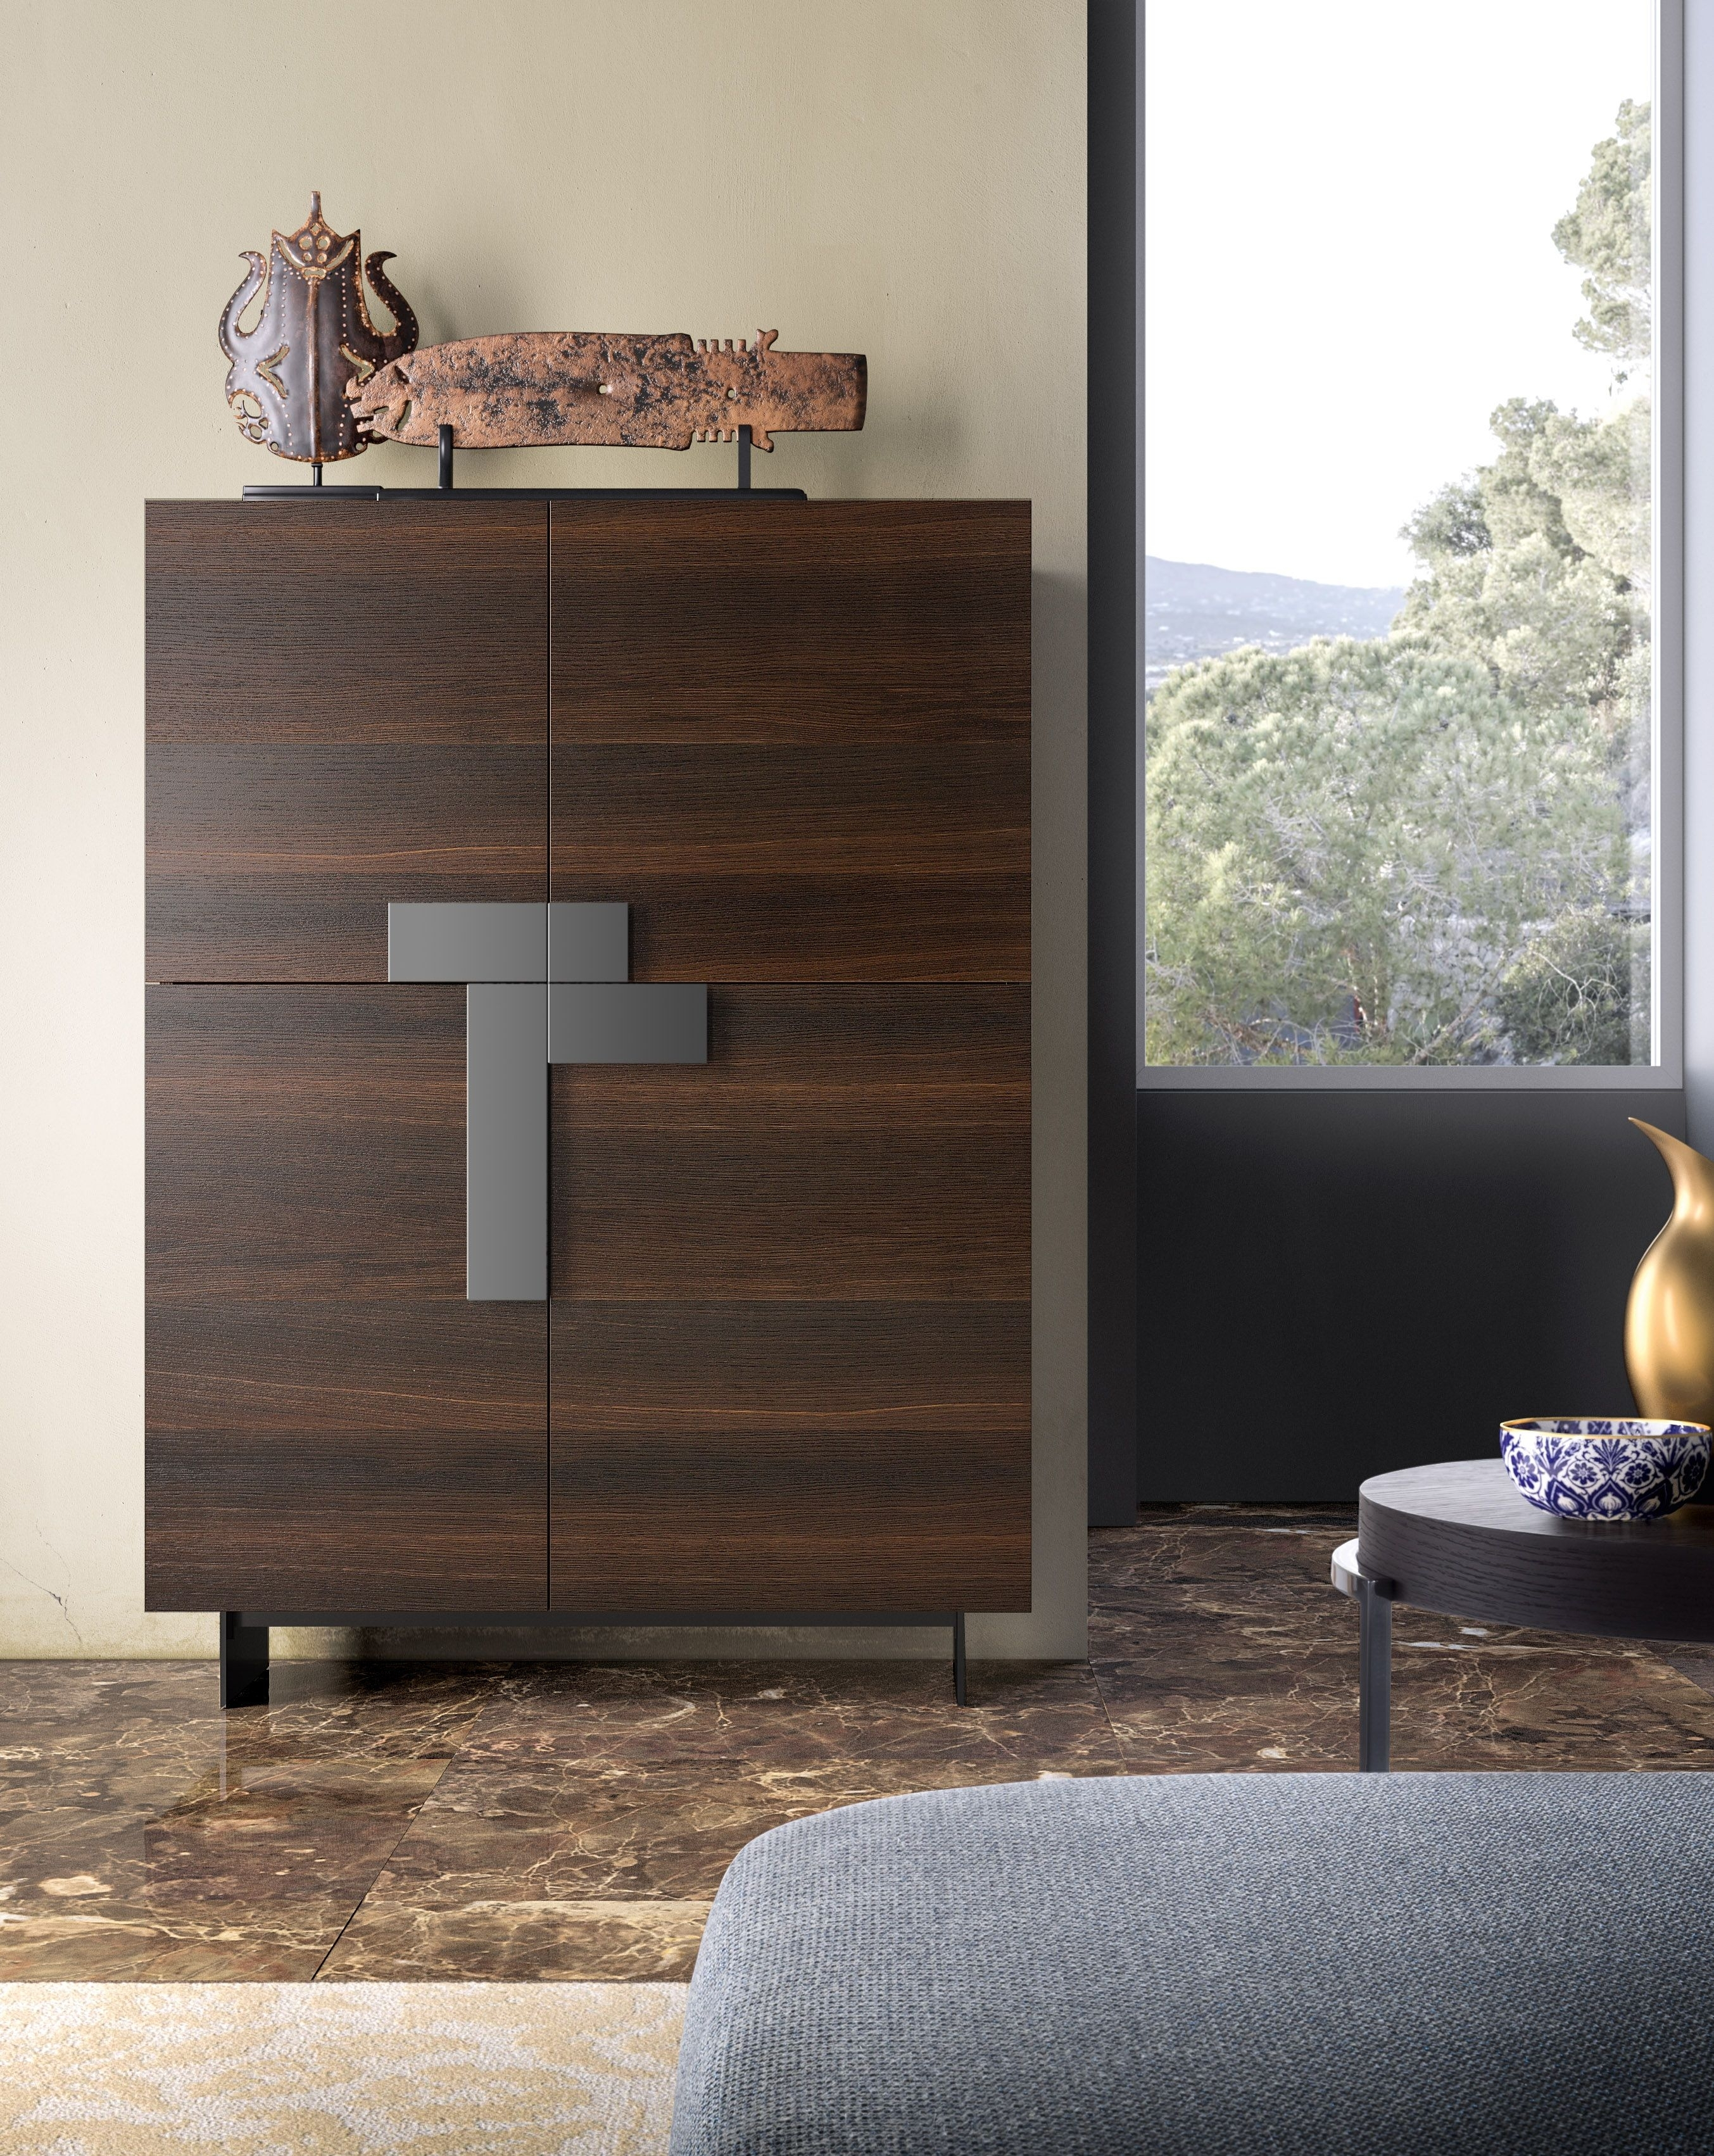 Ginevra Sideboard With Burnt Oak Structure And Fronts, Titanium Pertaining To Recent Black Burnt Oak Sideboards (View 2 of 20)